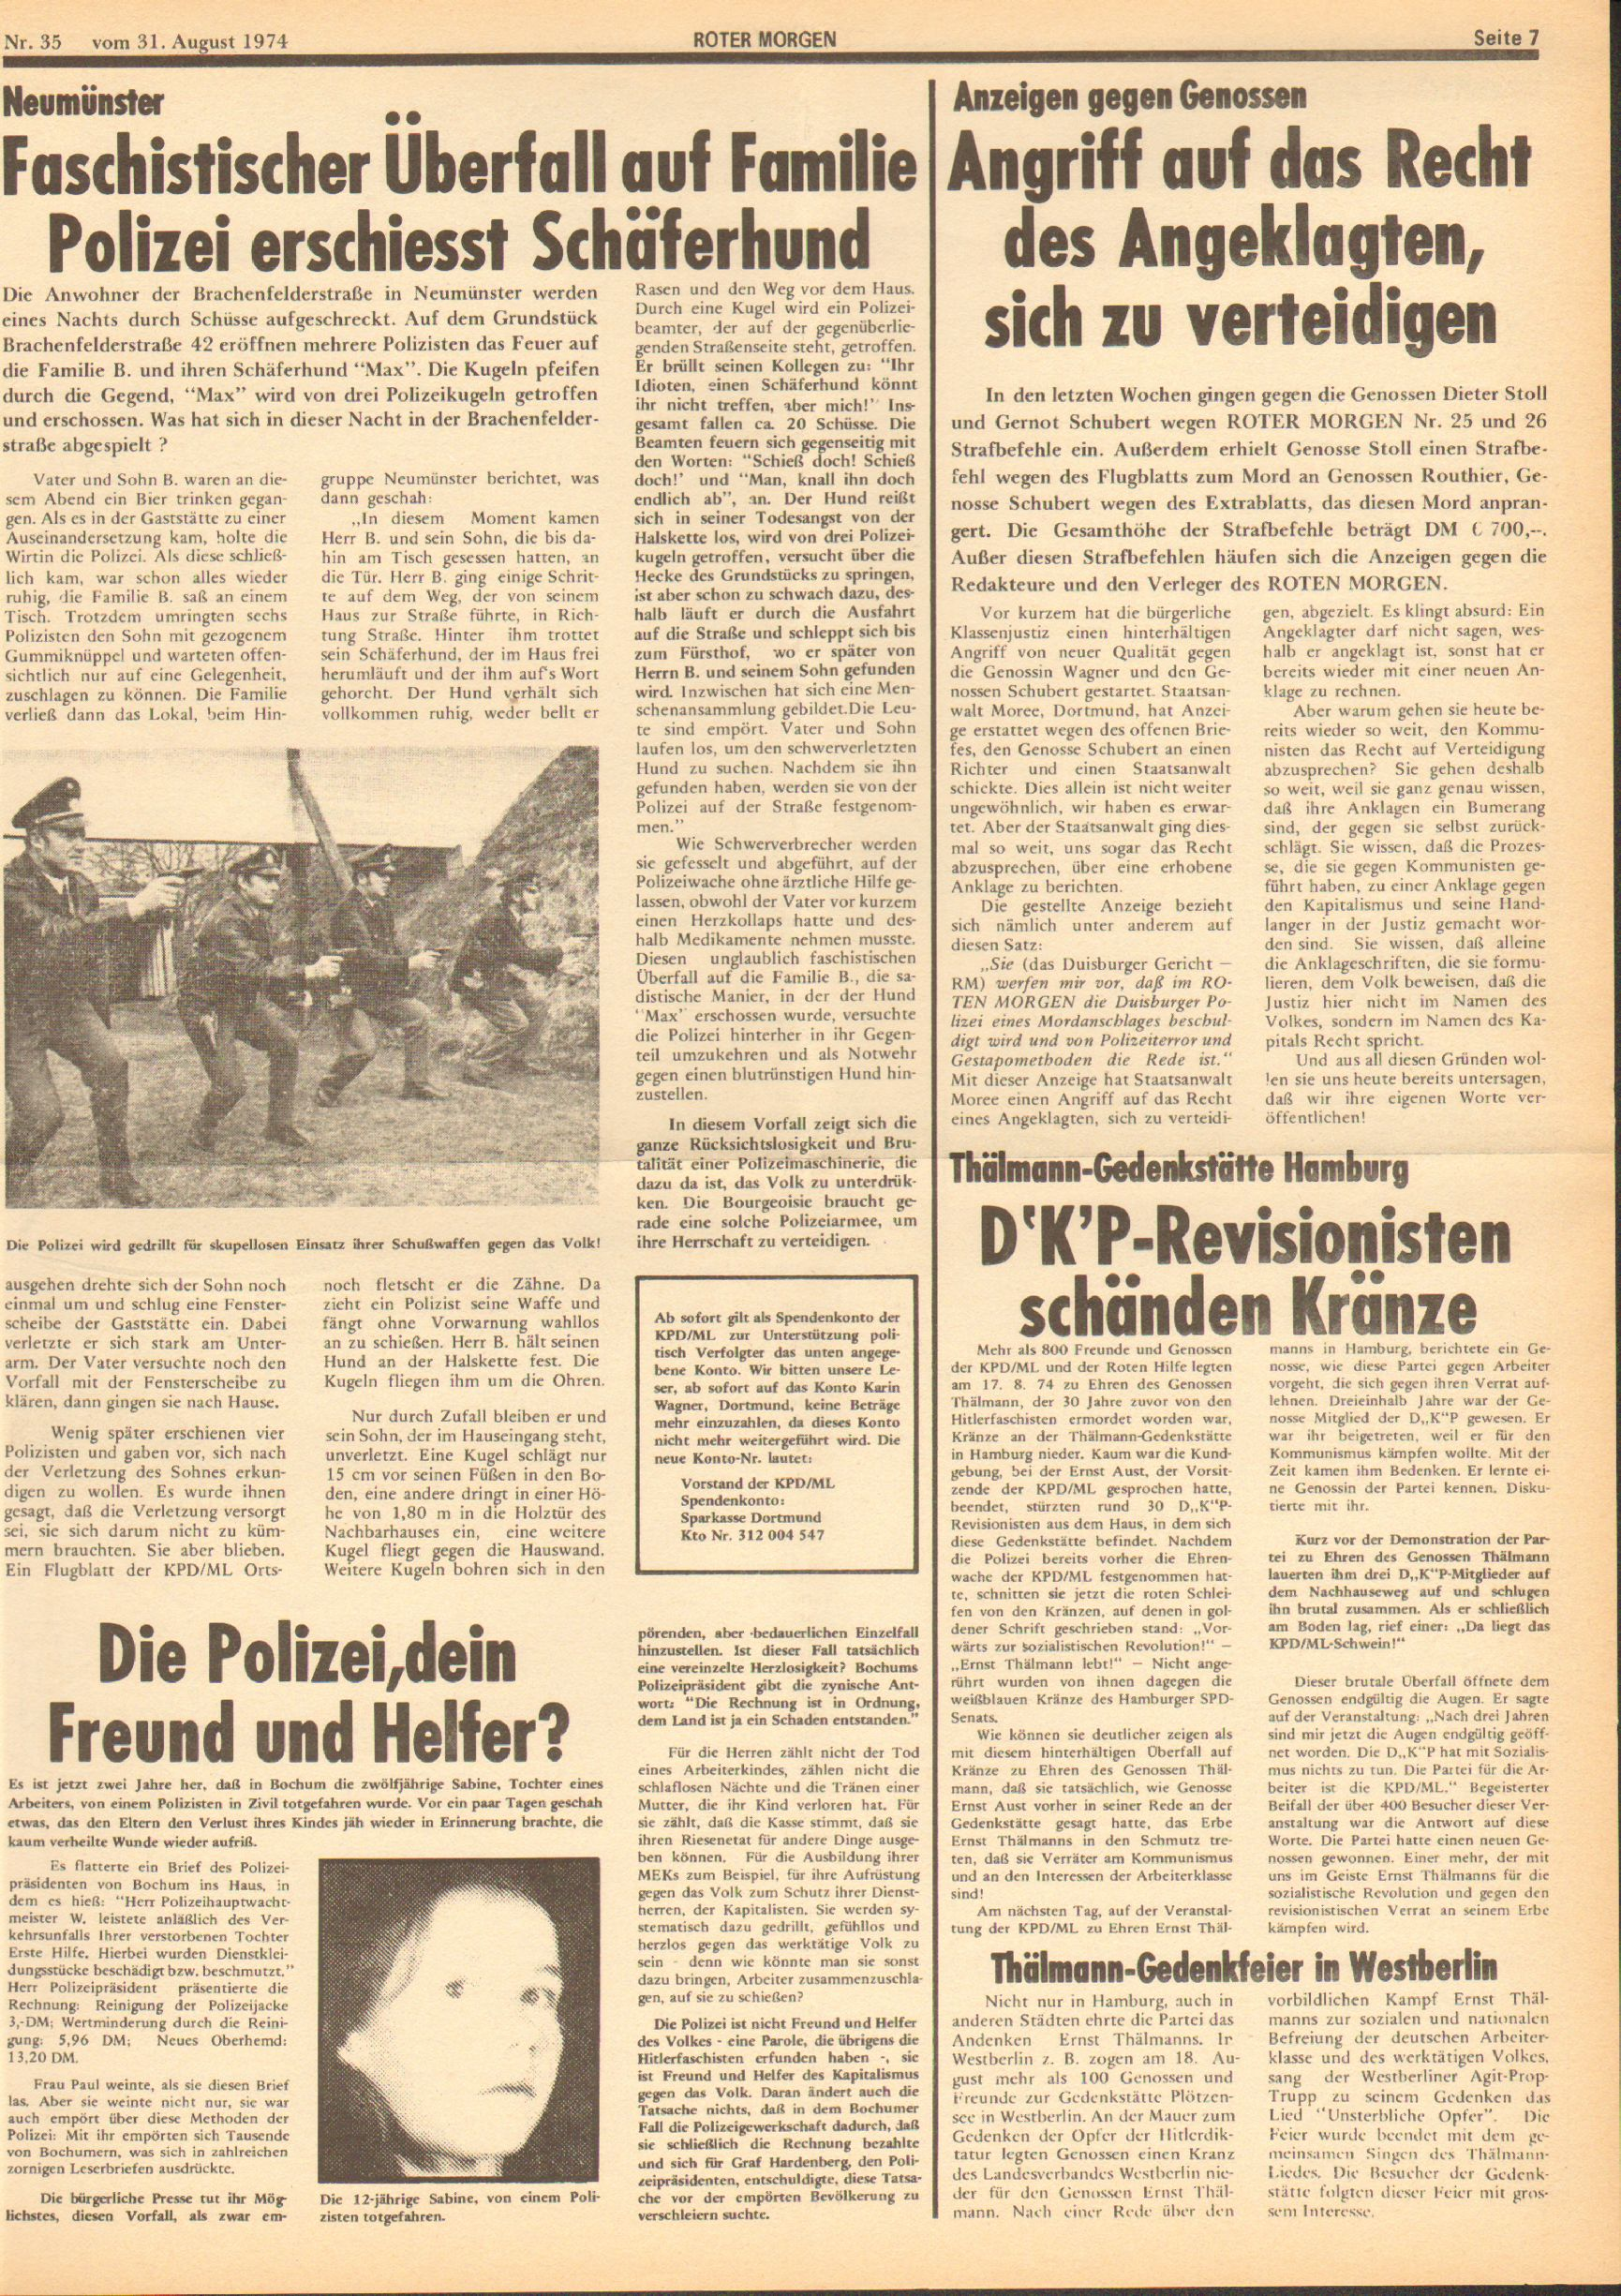 Roter Morgen, 8. Jg., 31. August 1974, Nr. 35, Seite 7